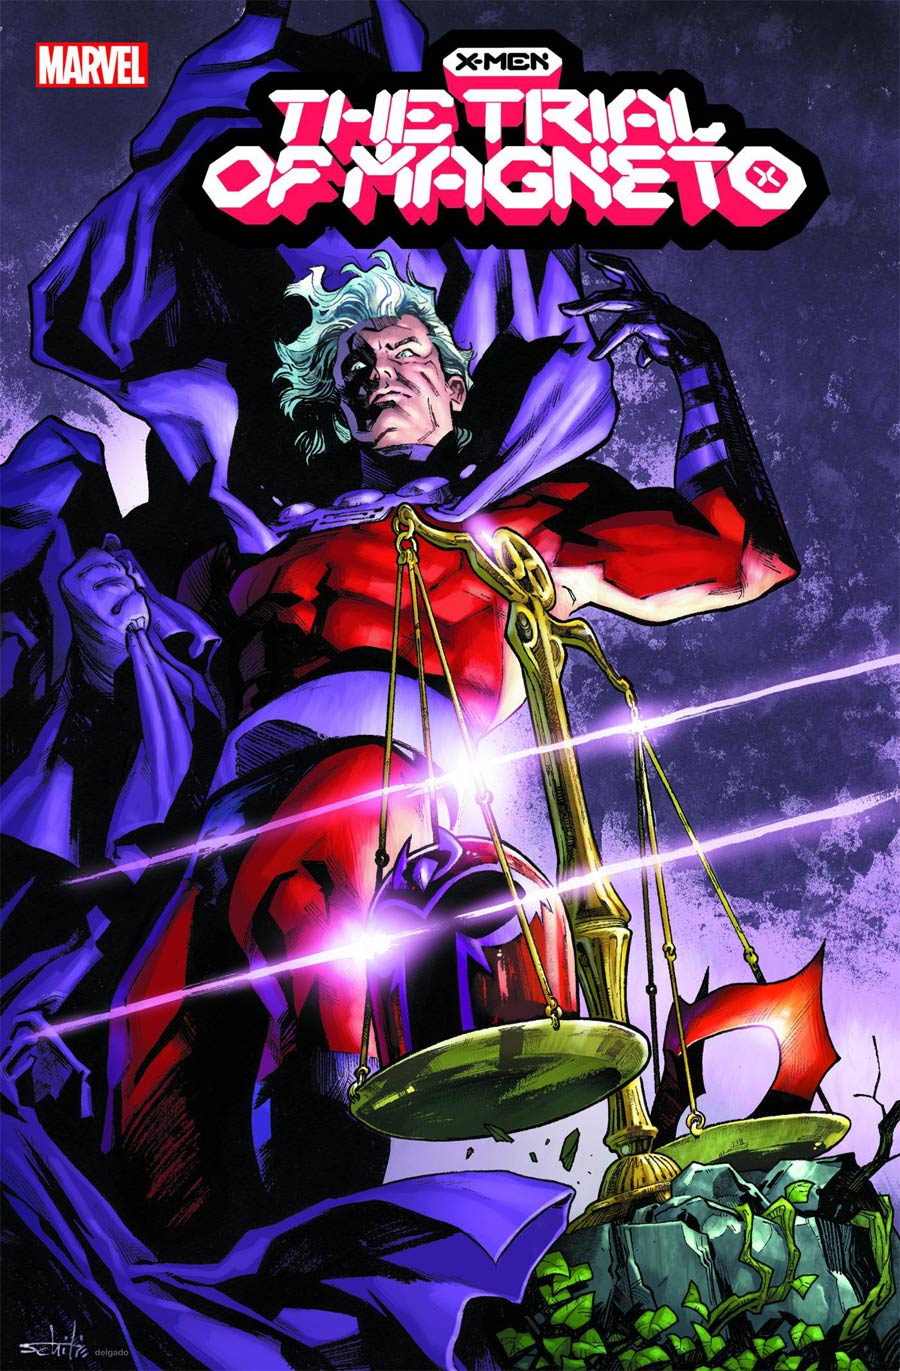 X-Men: The Trial of Magneto